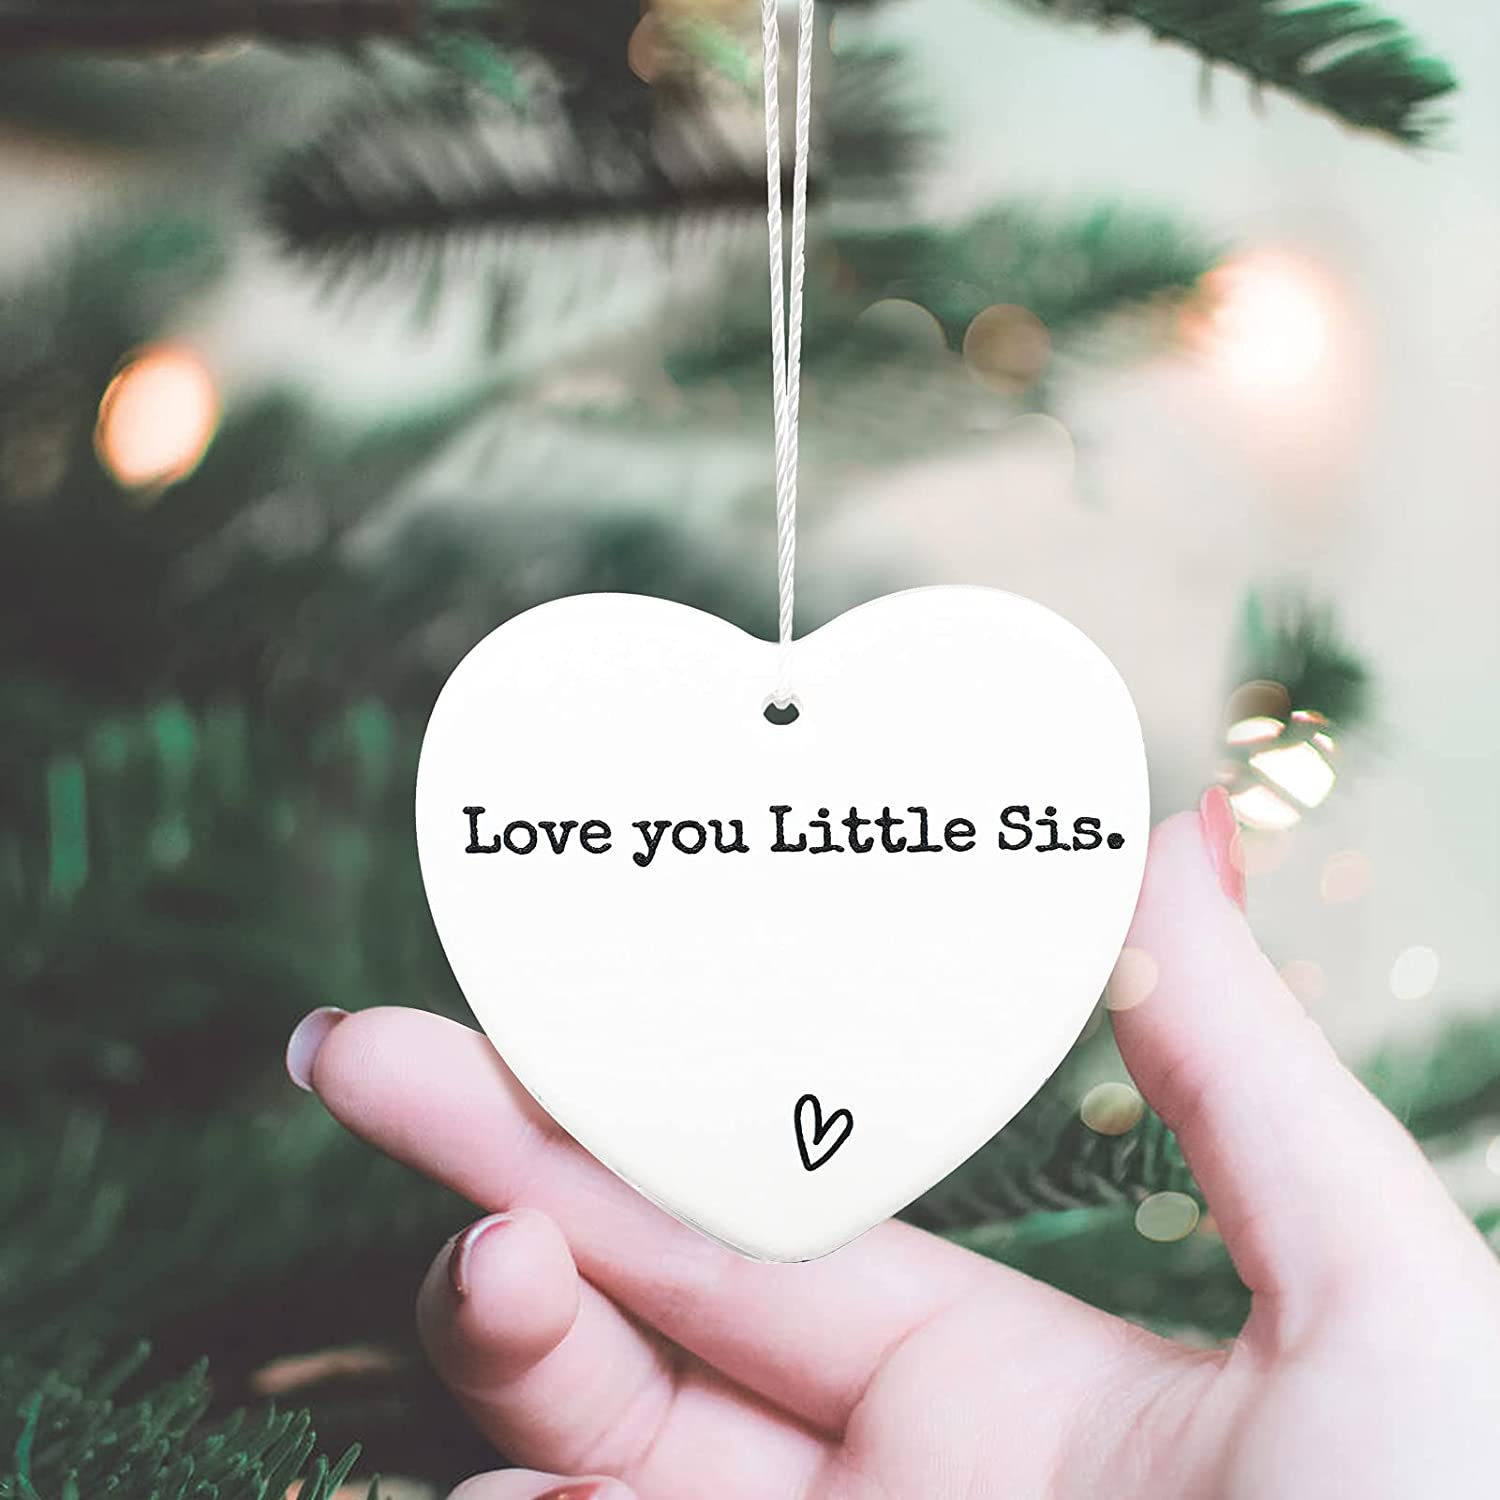 JasmineLi Love You Little Sis Ornament,Sister Keepsake for Little Sister Gift Tough Times Missing You Friends Apart Send Love Collectible Gift Ceramic Heart Present Ornament,onesize